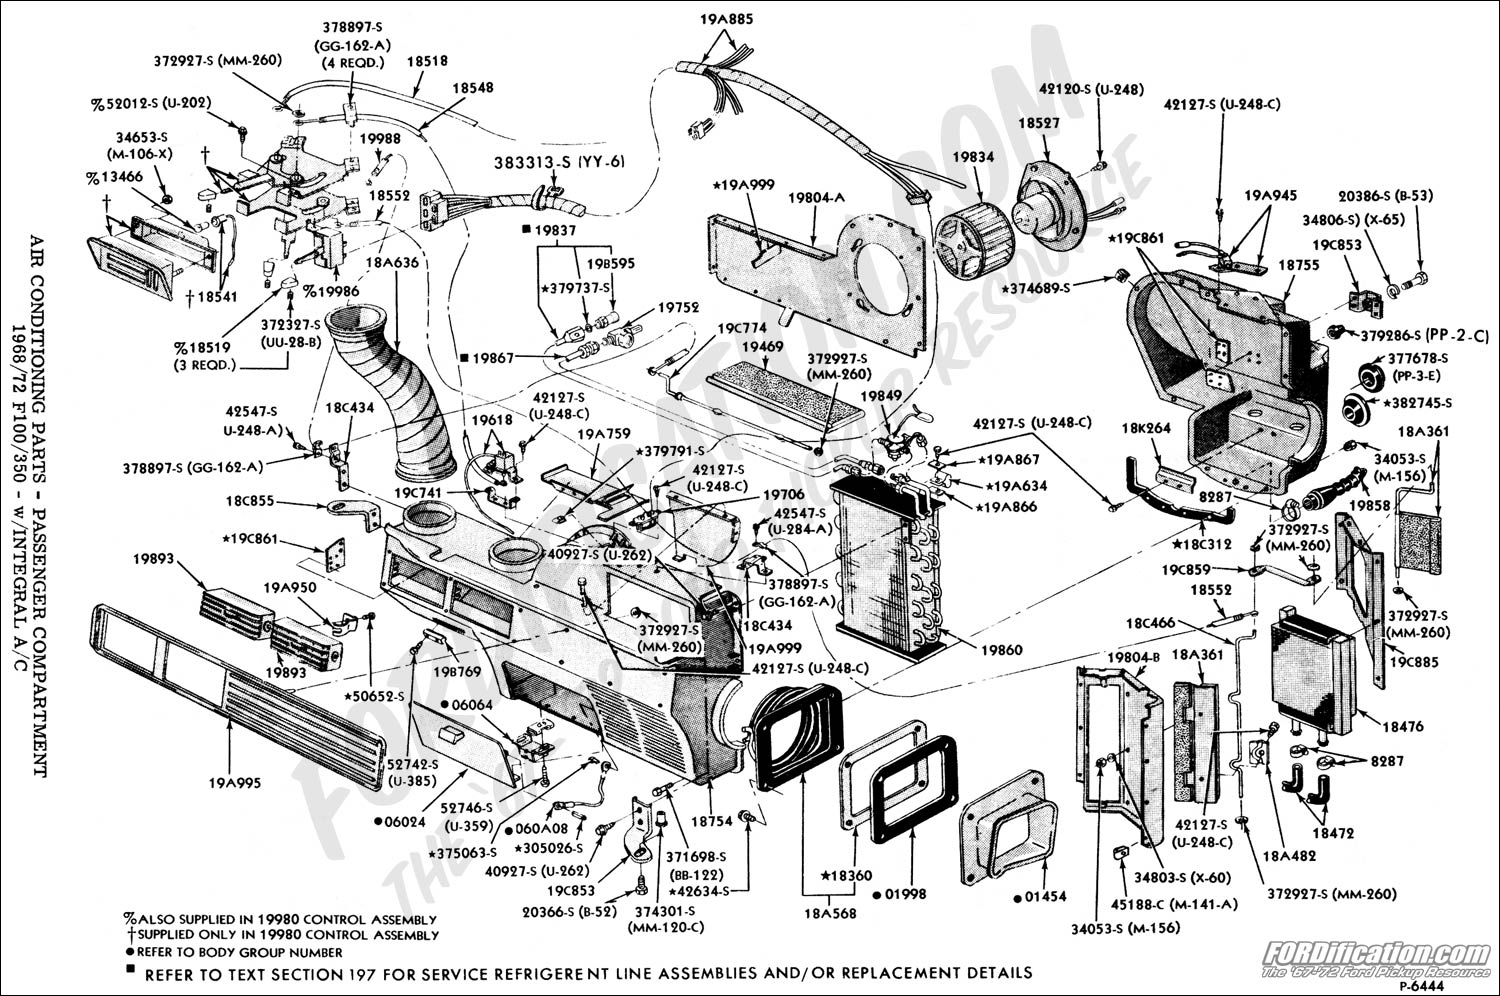 Air Conditioner Parts Diagram